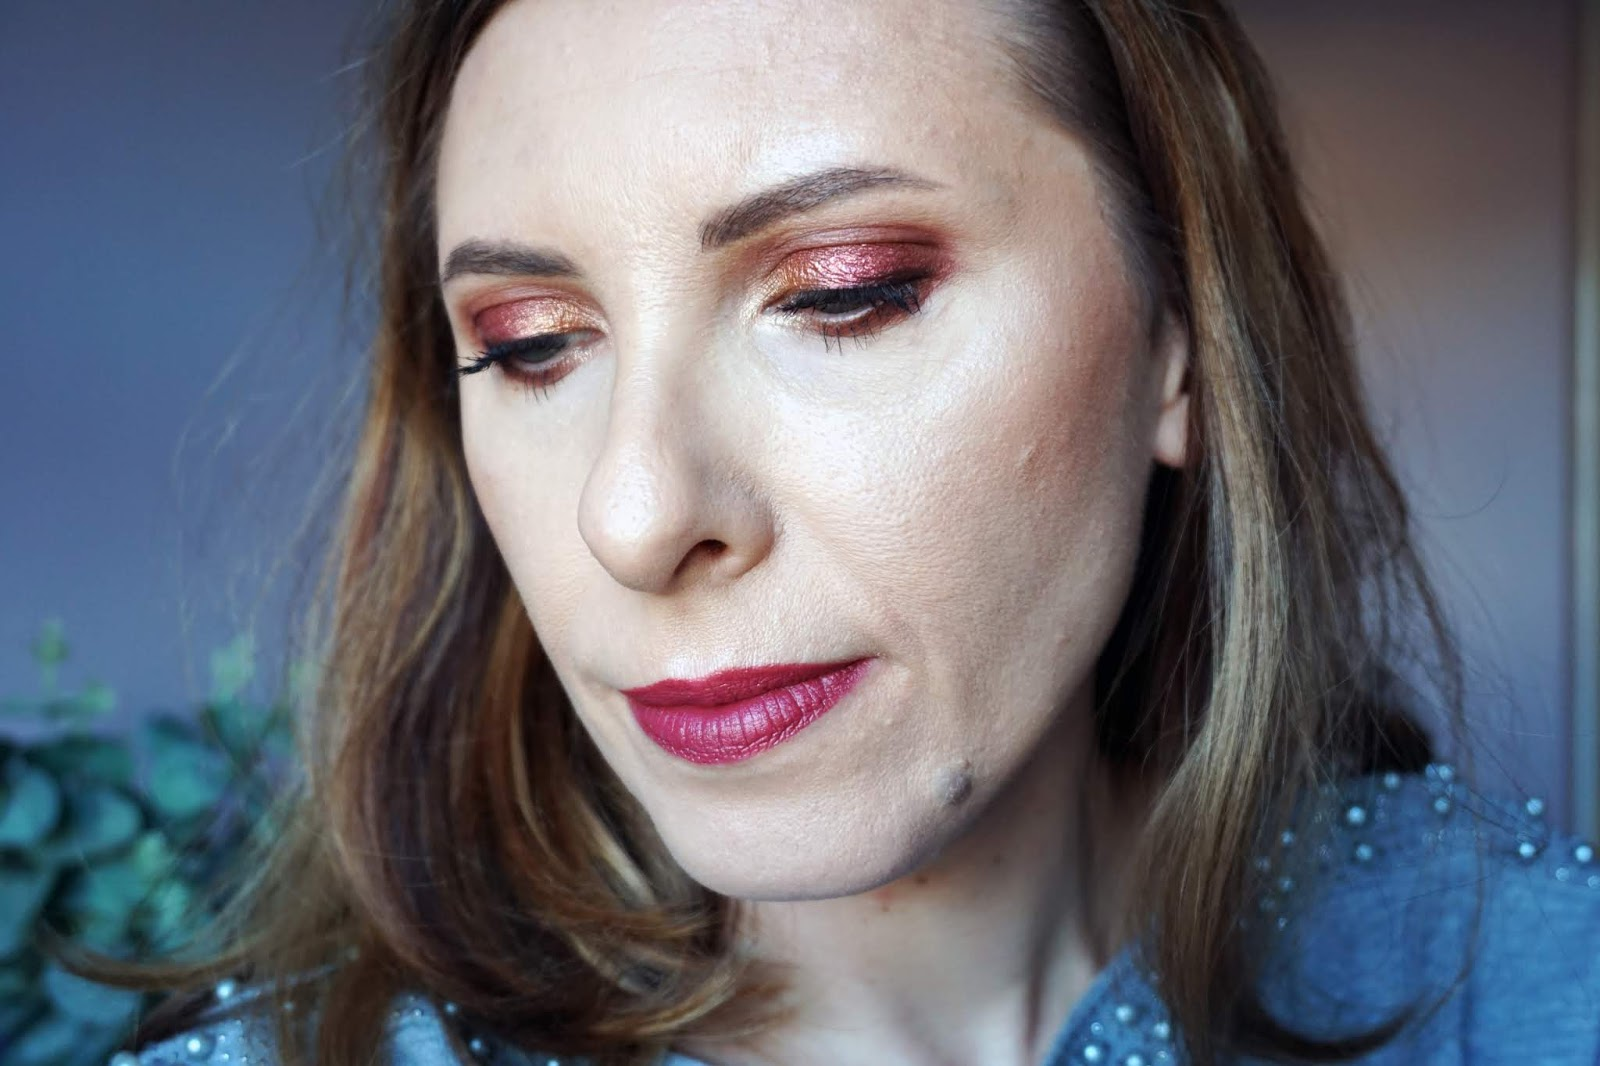 Makeup look created with Revolution Pro x Nath palettes